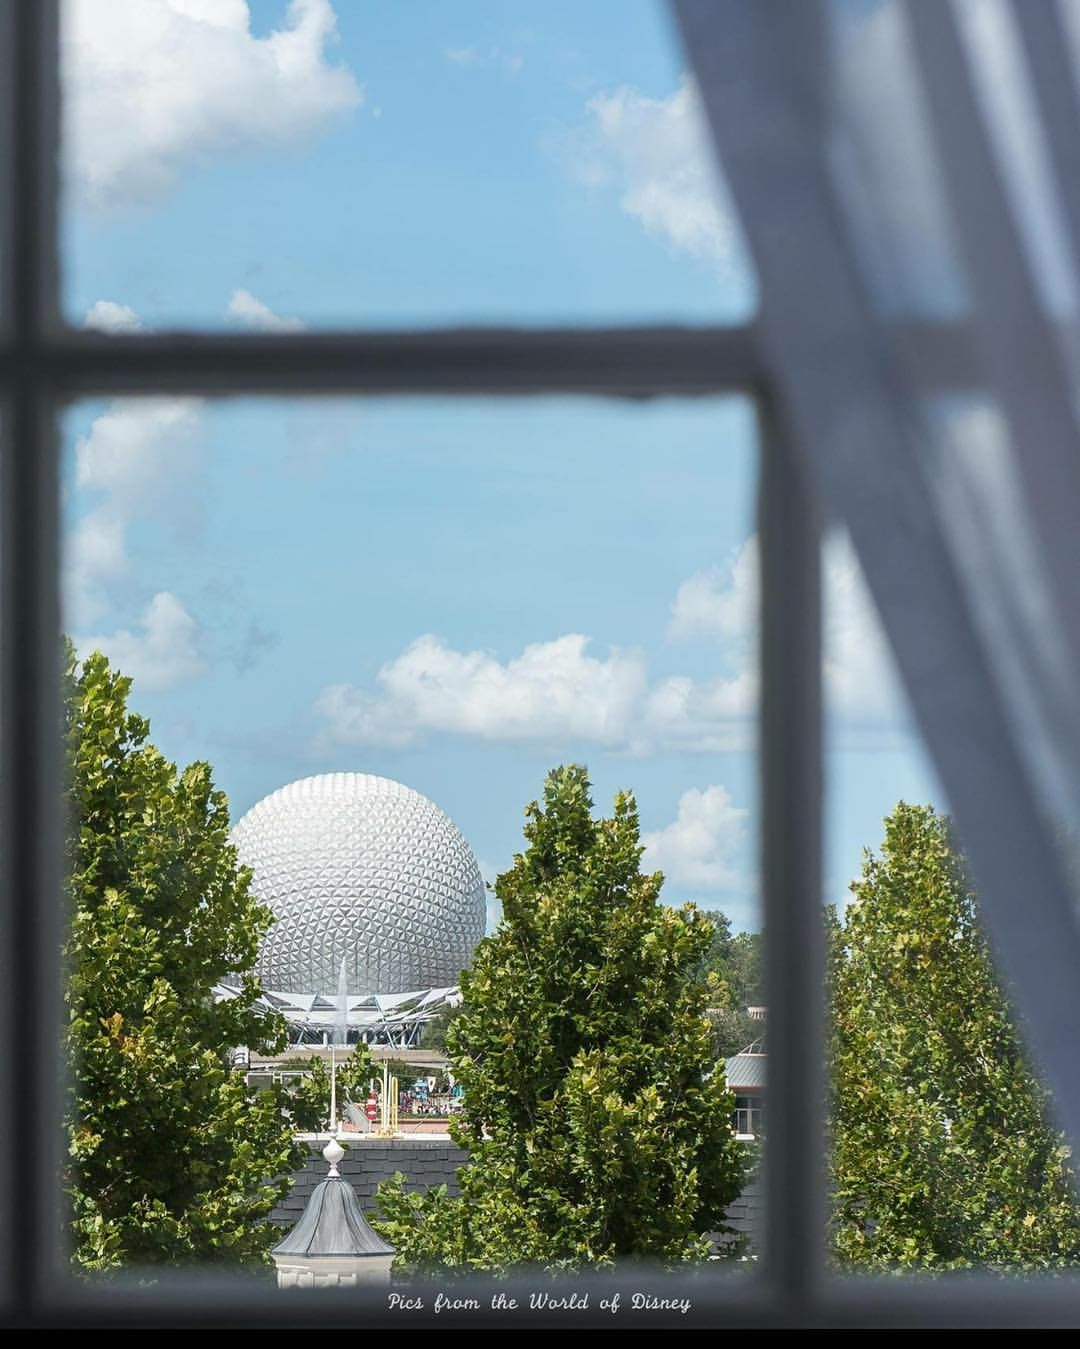 """Laurie Sapp (@picsfromtheworldofdisney) on Instagram: """"A little different view of Spaceship Earth.  Where am I?"""""""